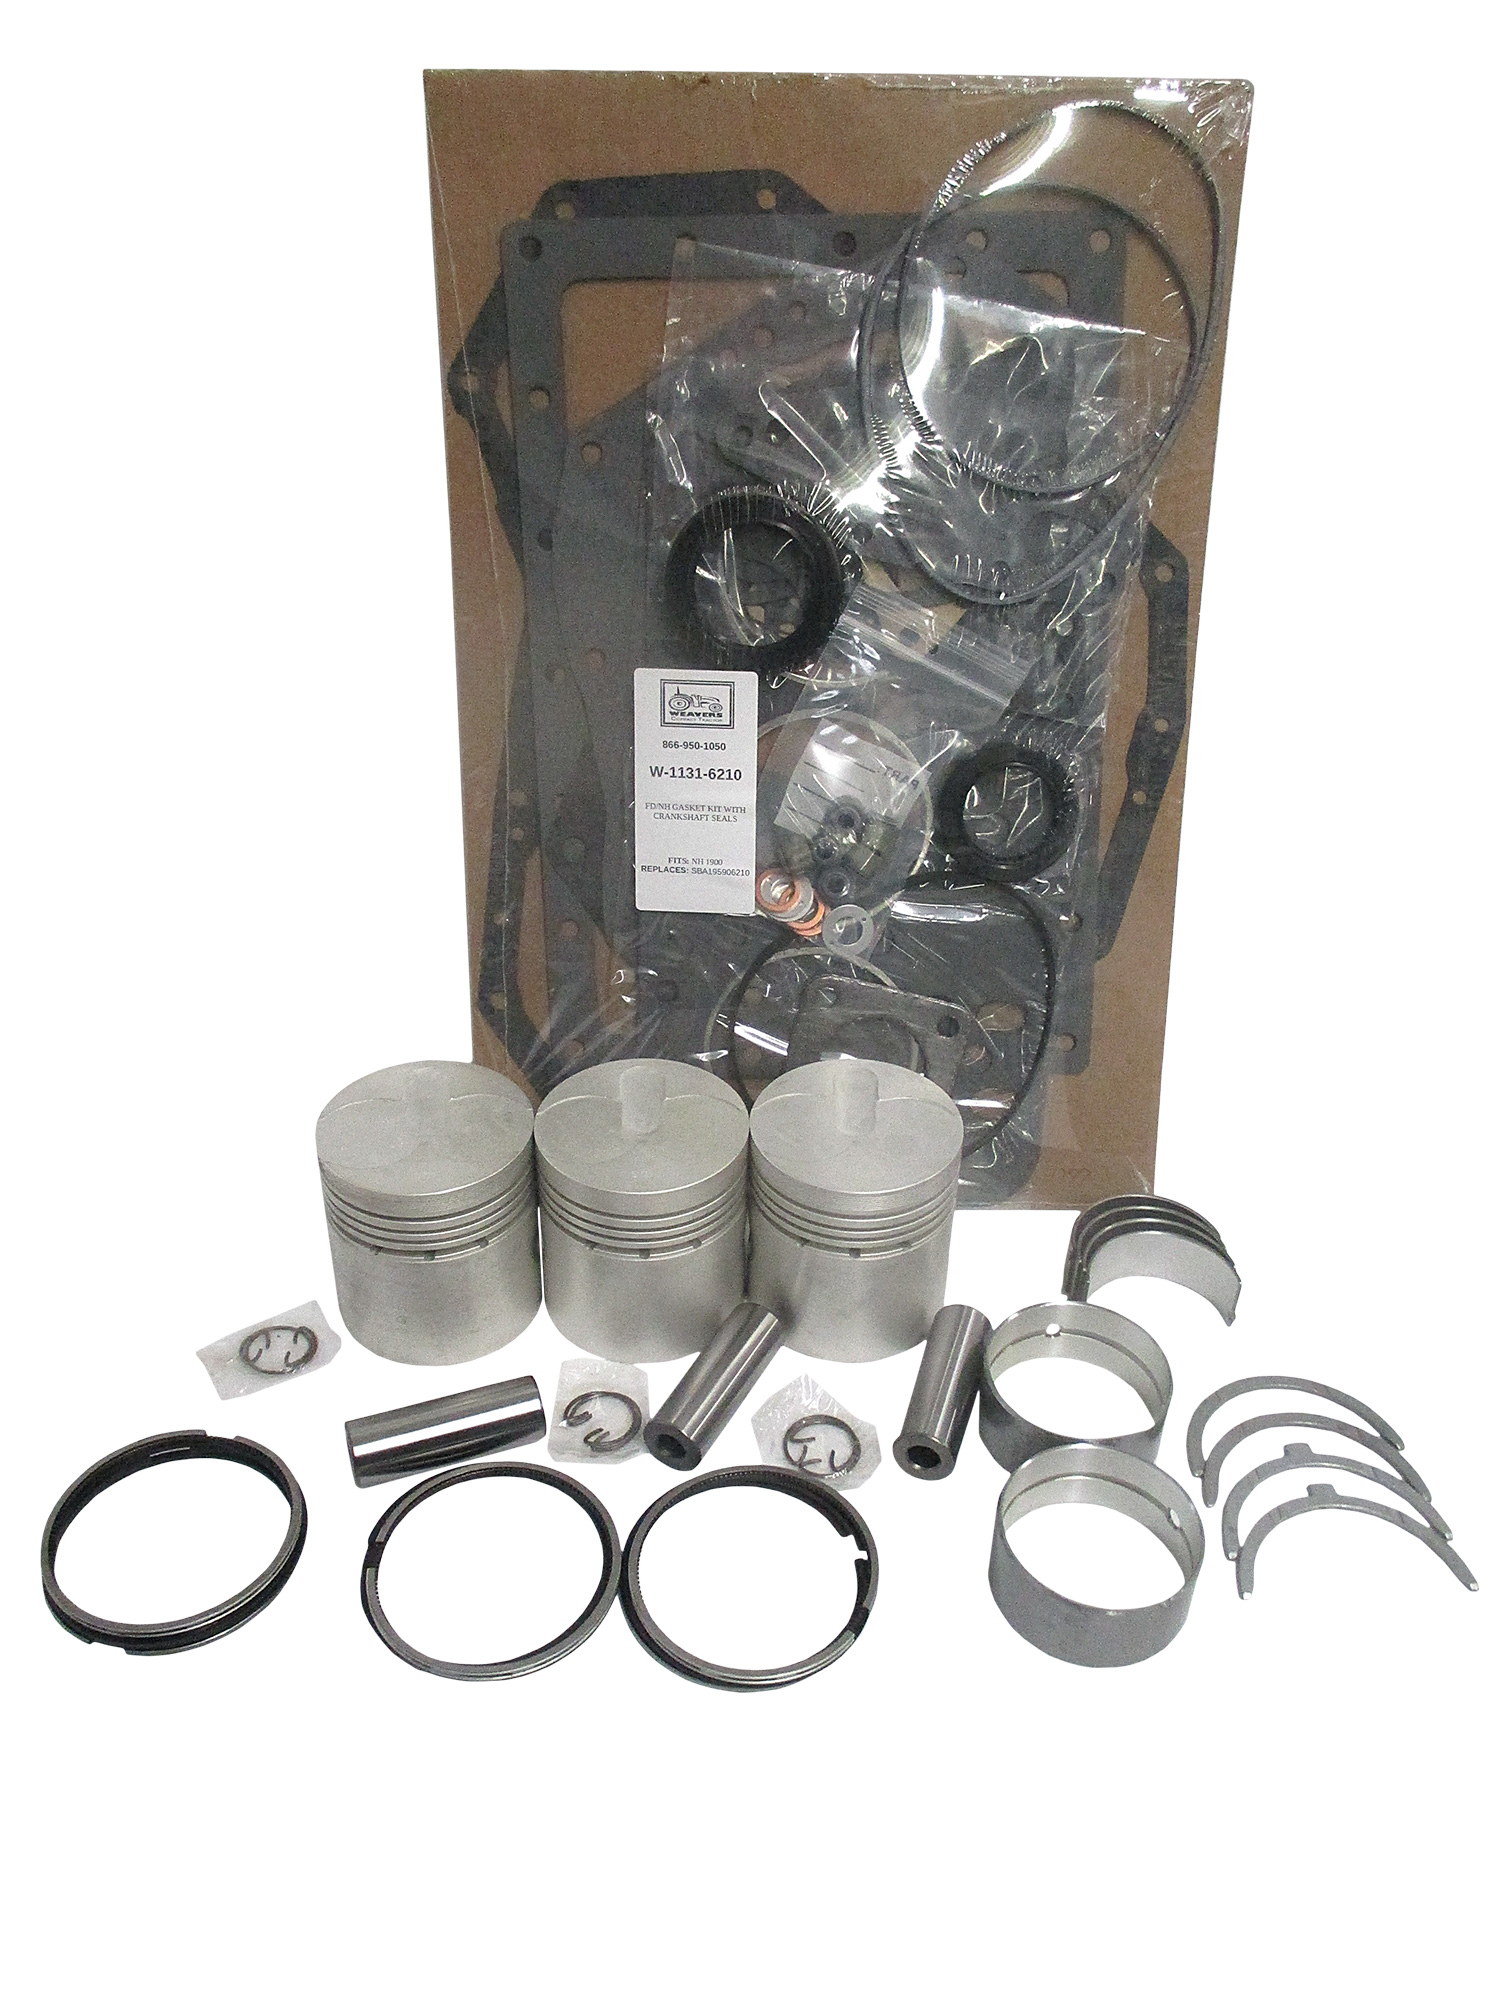 Engine Rebuild Kits For Ford New Holland Compact Tractor Engines 1710 Wiring Harness Picture Rebuilt Kit